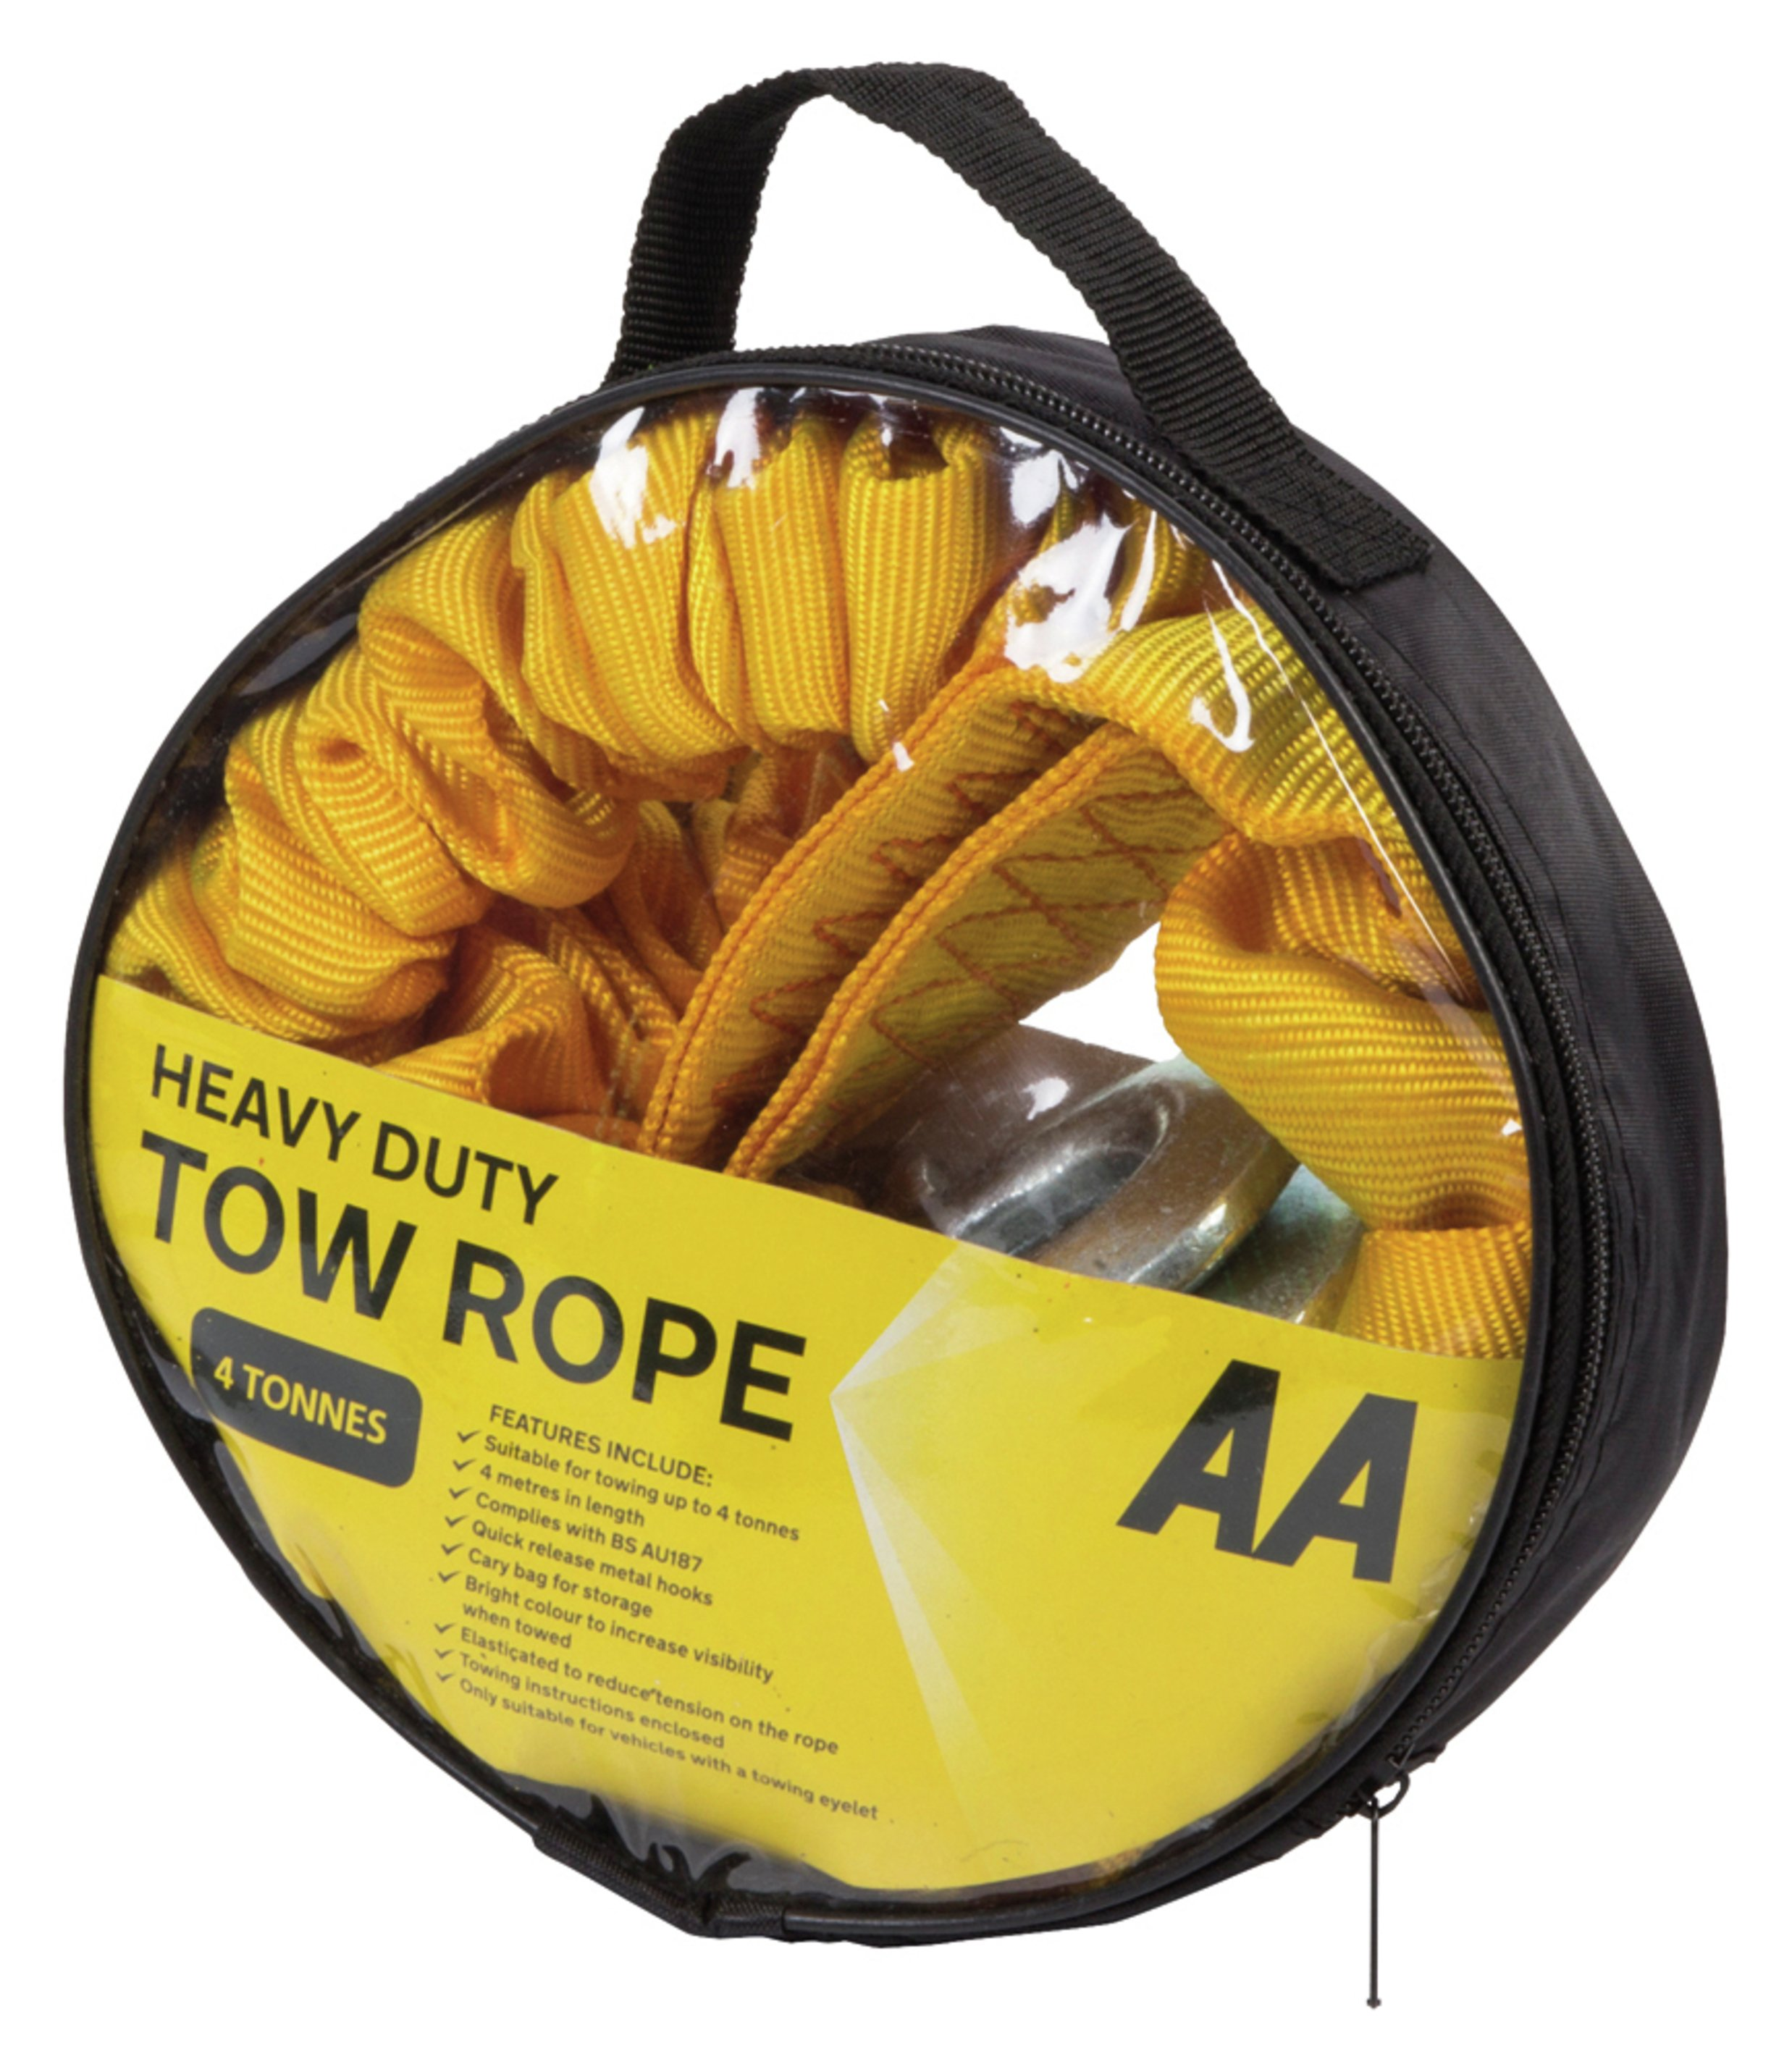 AA 4 Metre Tow Rope with Carry Bag - 4 Tonnes